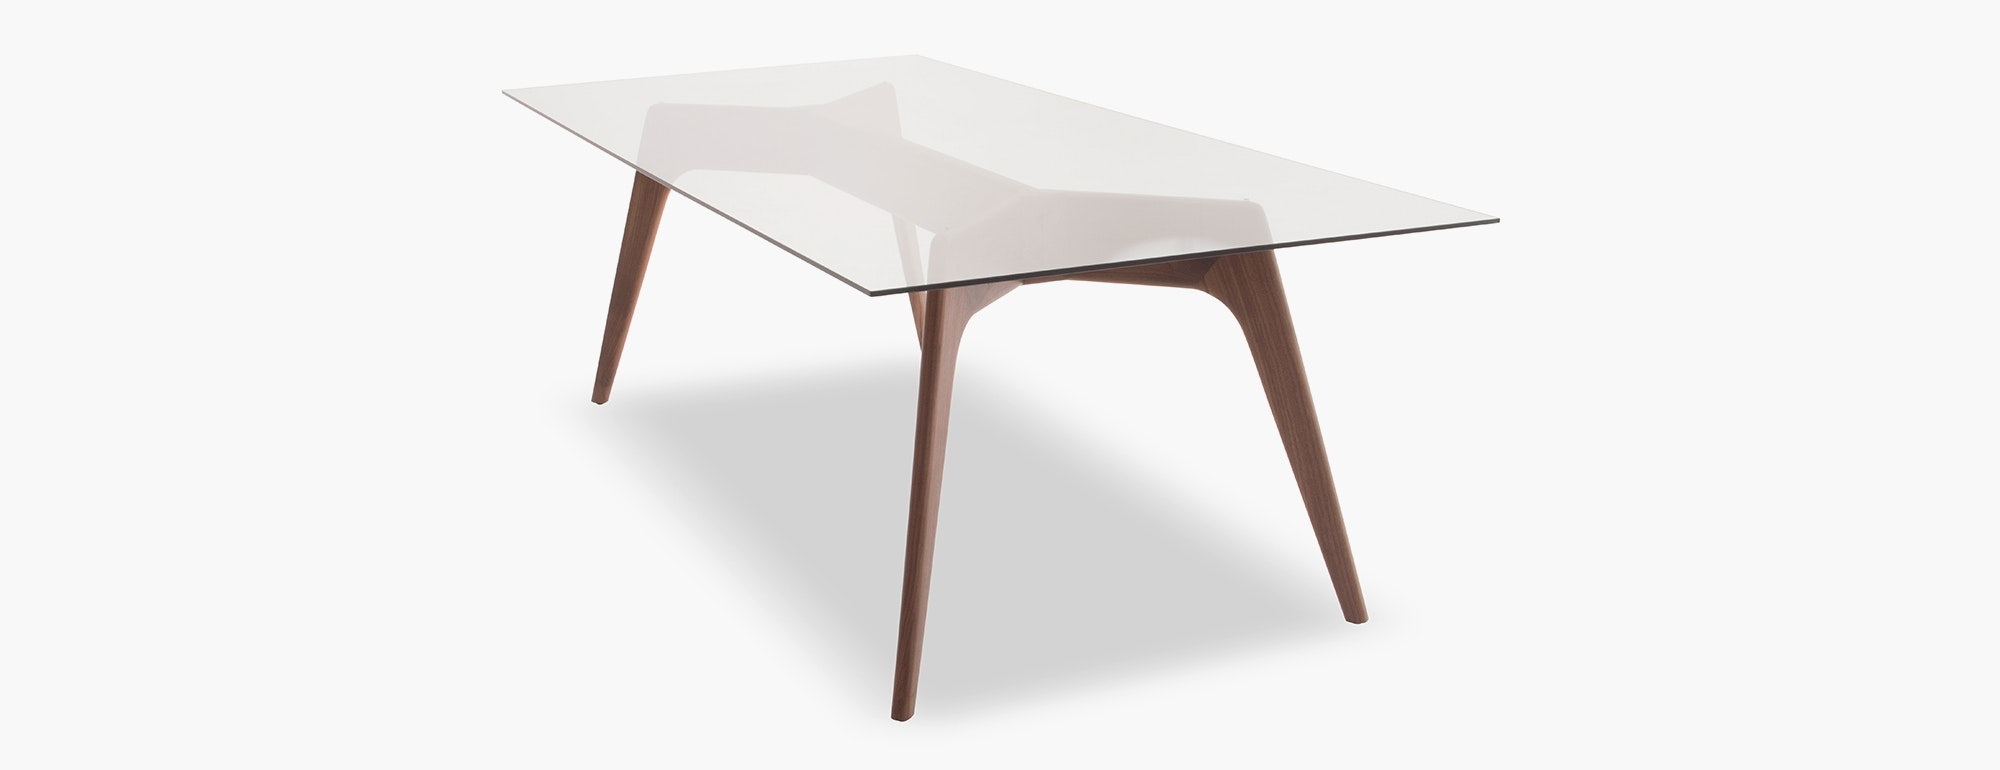 hesse dining table joybird hero wood anton accent main gallery dark farmhouse pottery barn glass floor lamp party cloth cream bedside lamps grey mirrored brown coffee side sofa